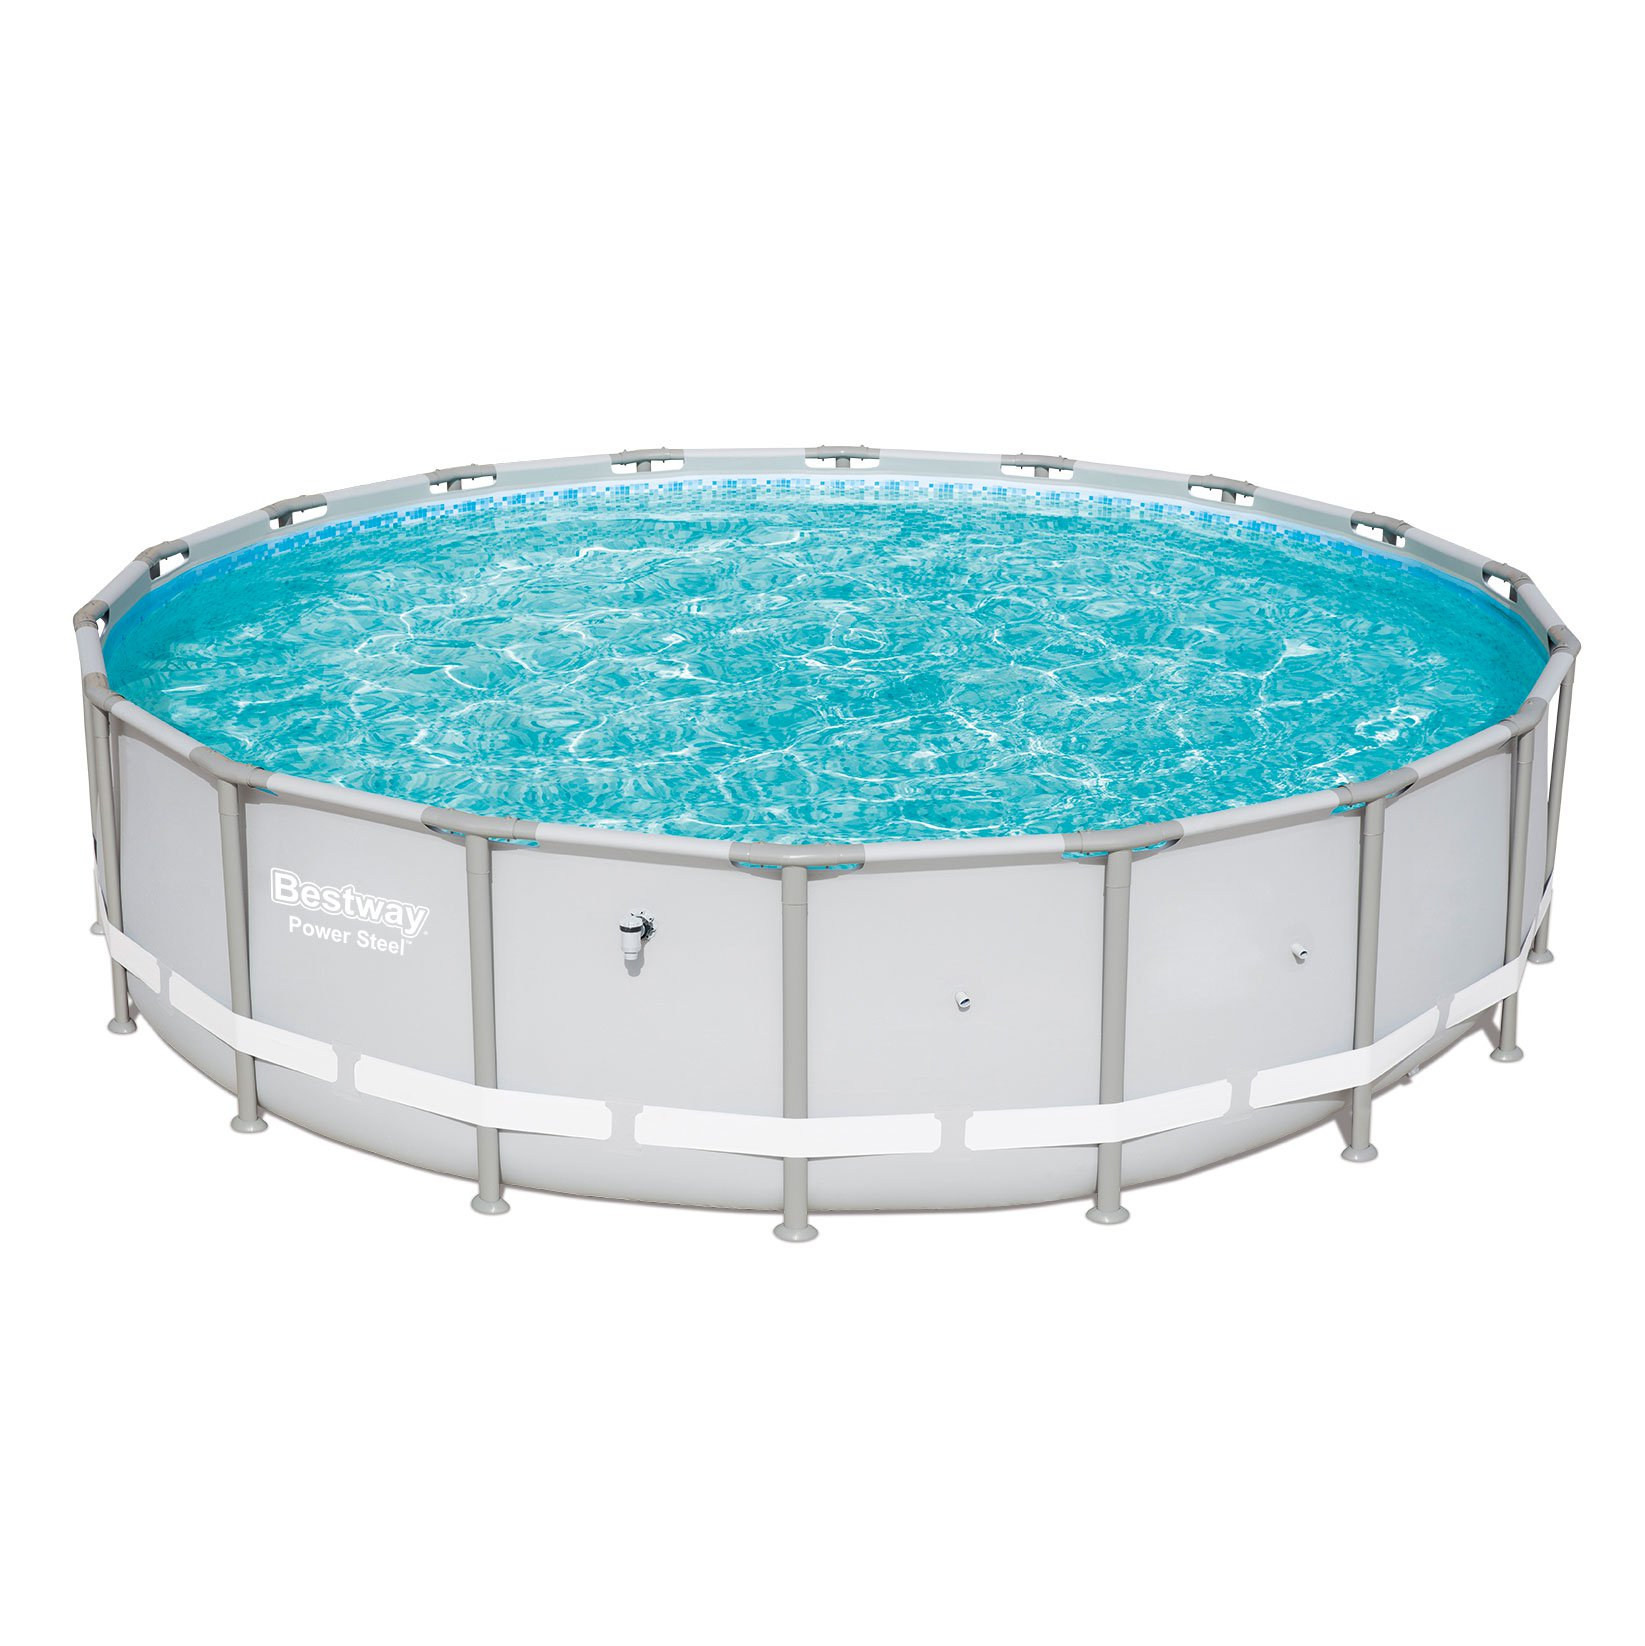 """Bestway 18' x 48"""" Power Steel Frame Above Ground Outdoor Swimming Pool w/o Parts"""